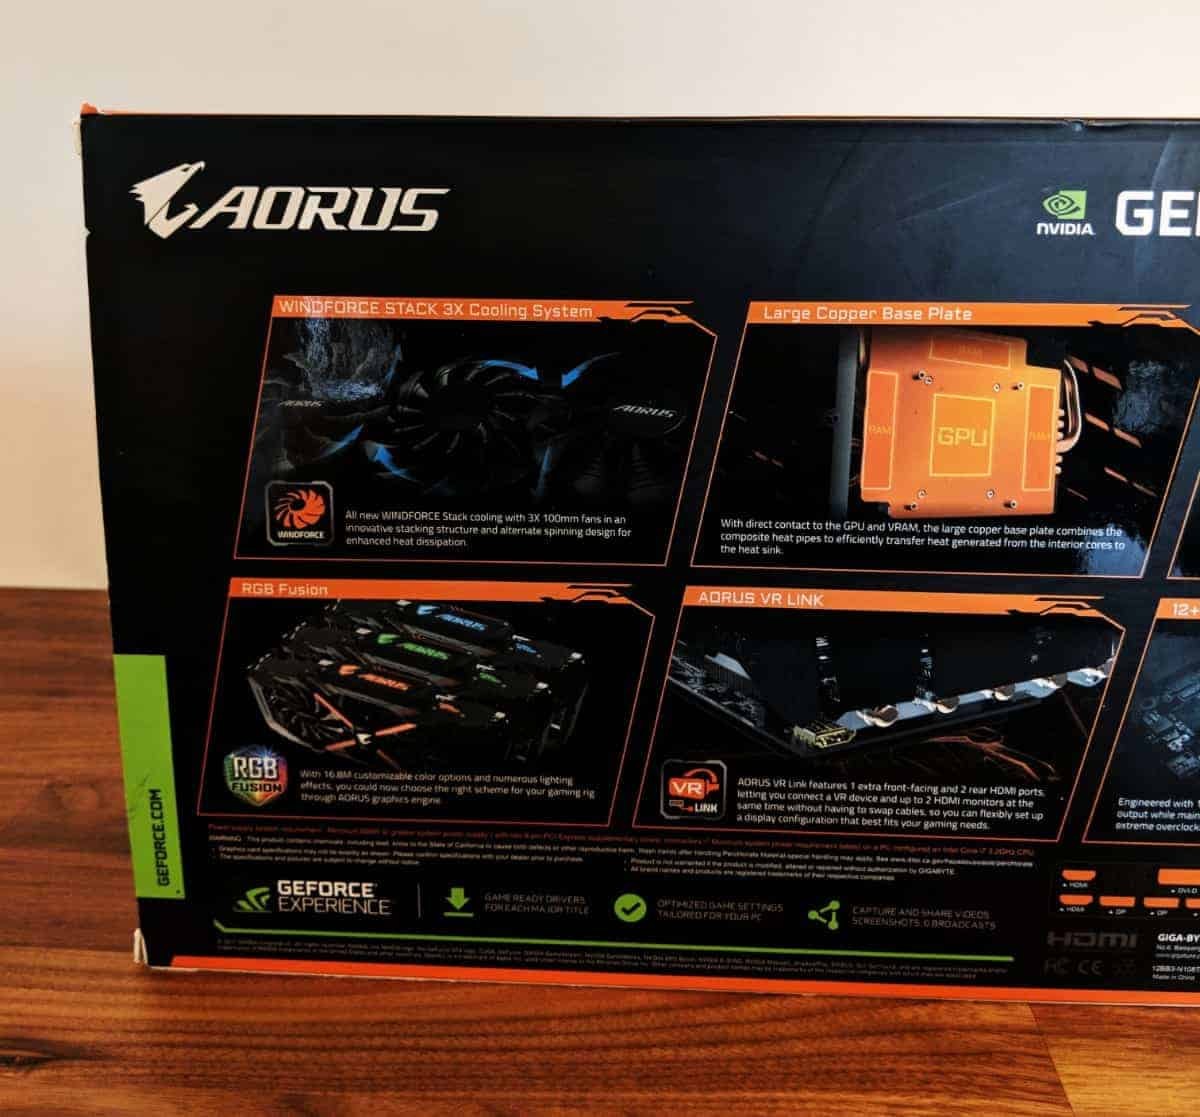 Gigabyte AORUS GTX 1080 Ti Review - The Streaming Blog